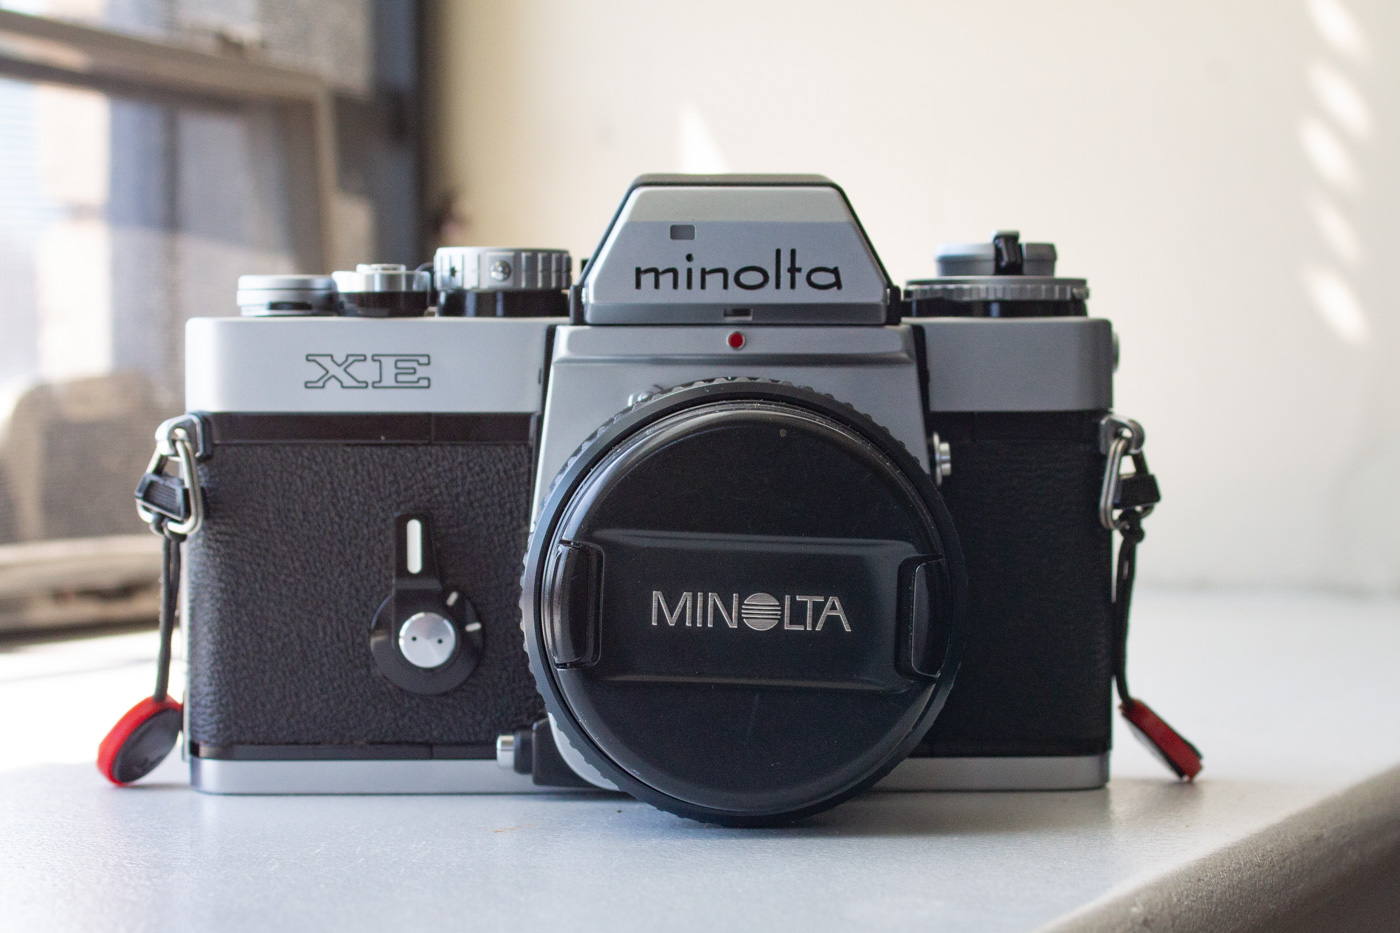 Test Roll for the Minolta XE